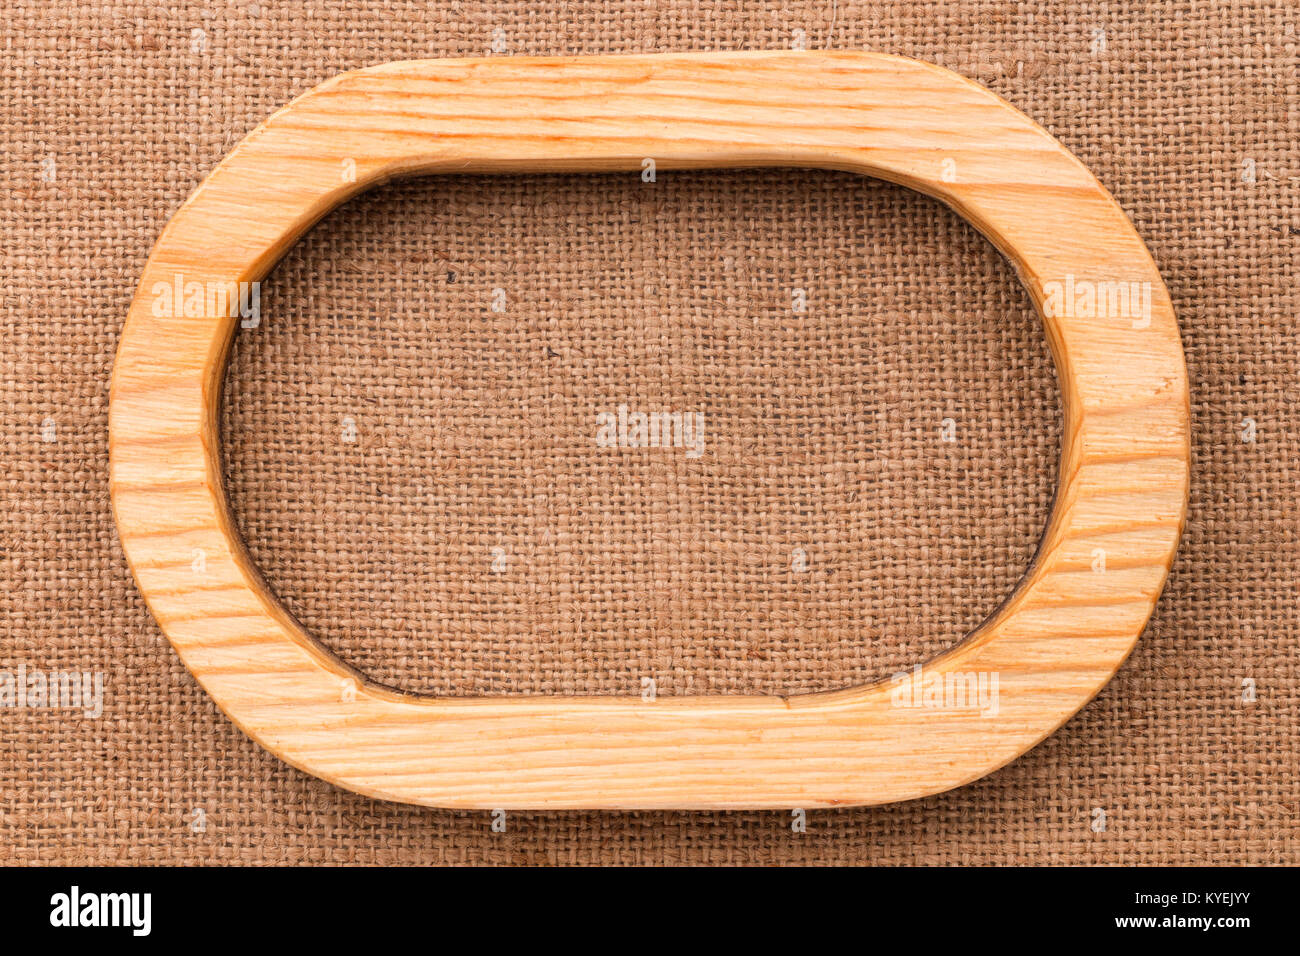 One-piece oval wooden frame lying on burlap. Natural patterns Stock ...